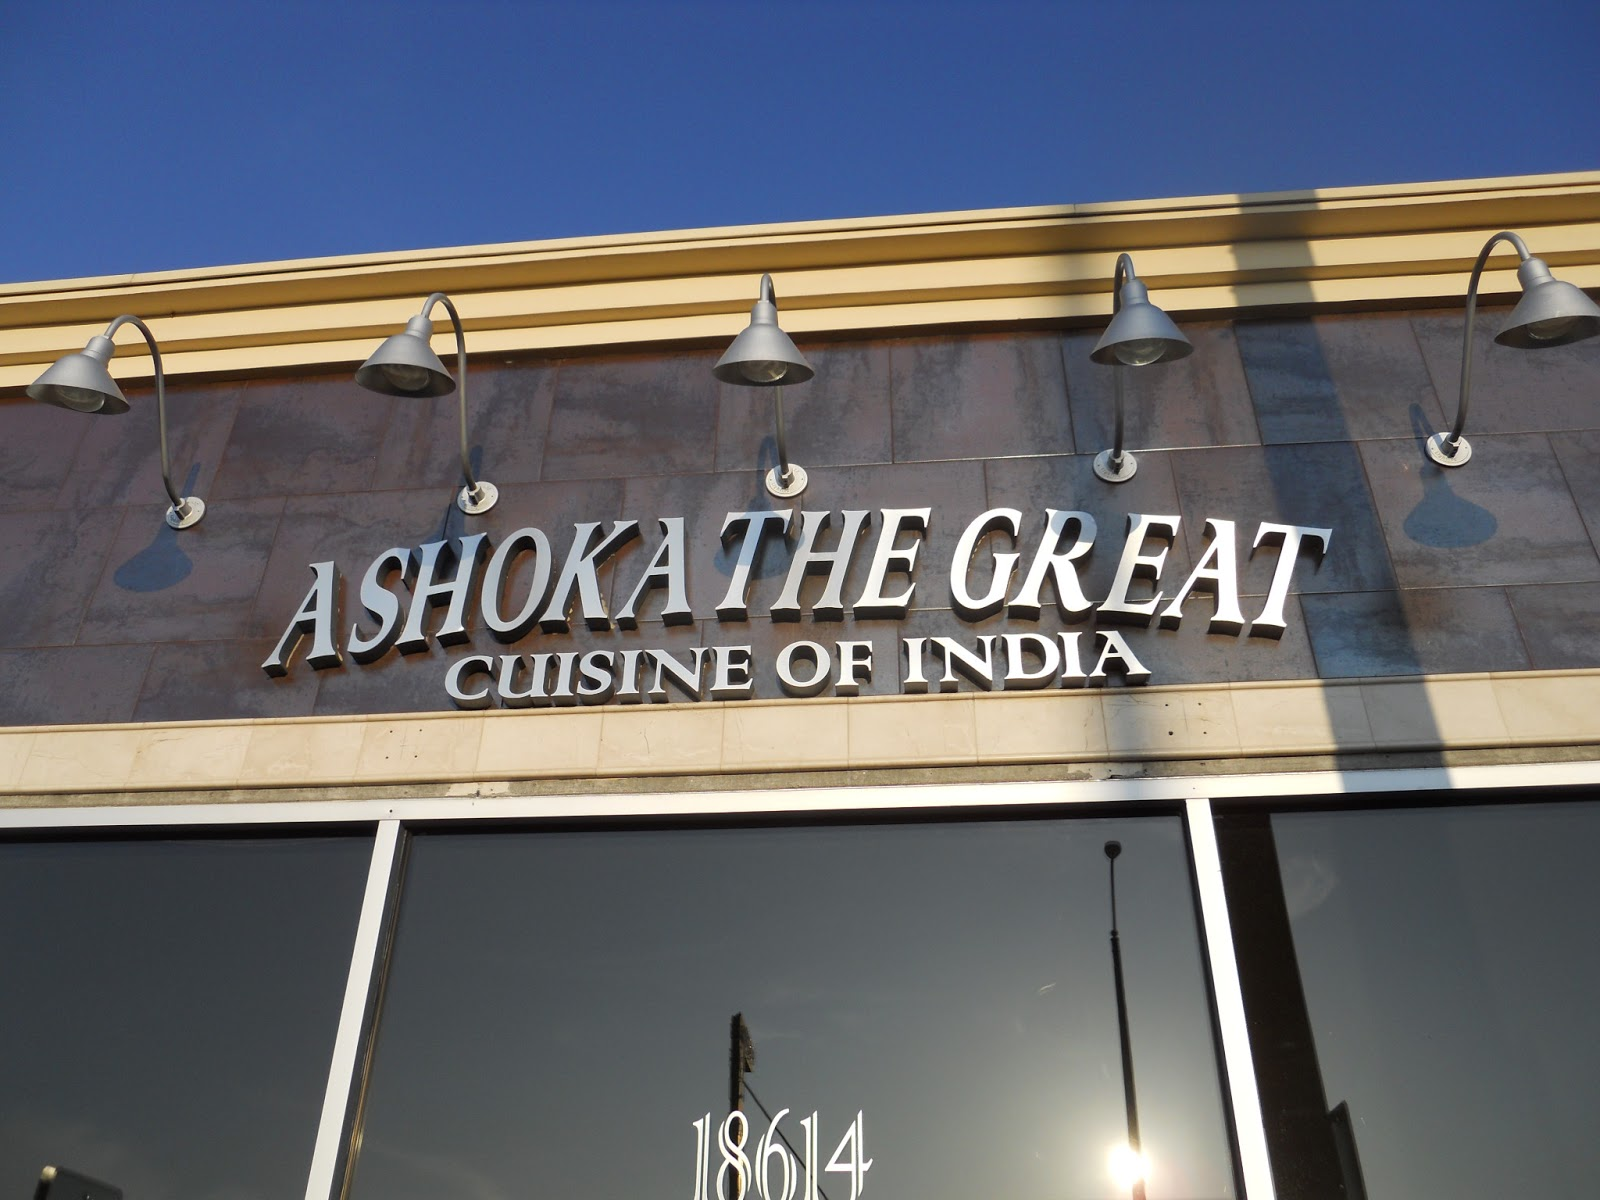 Ashoka The Great Cuisine Of India Of Boongablogger Restaurant Review Ashoka The Great